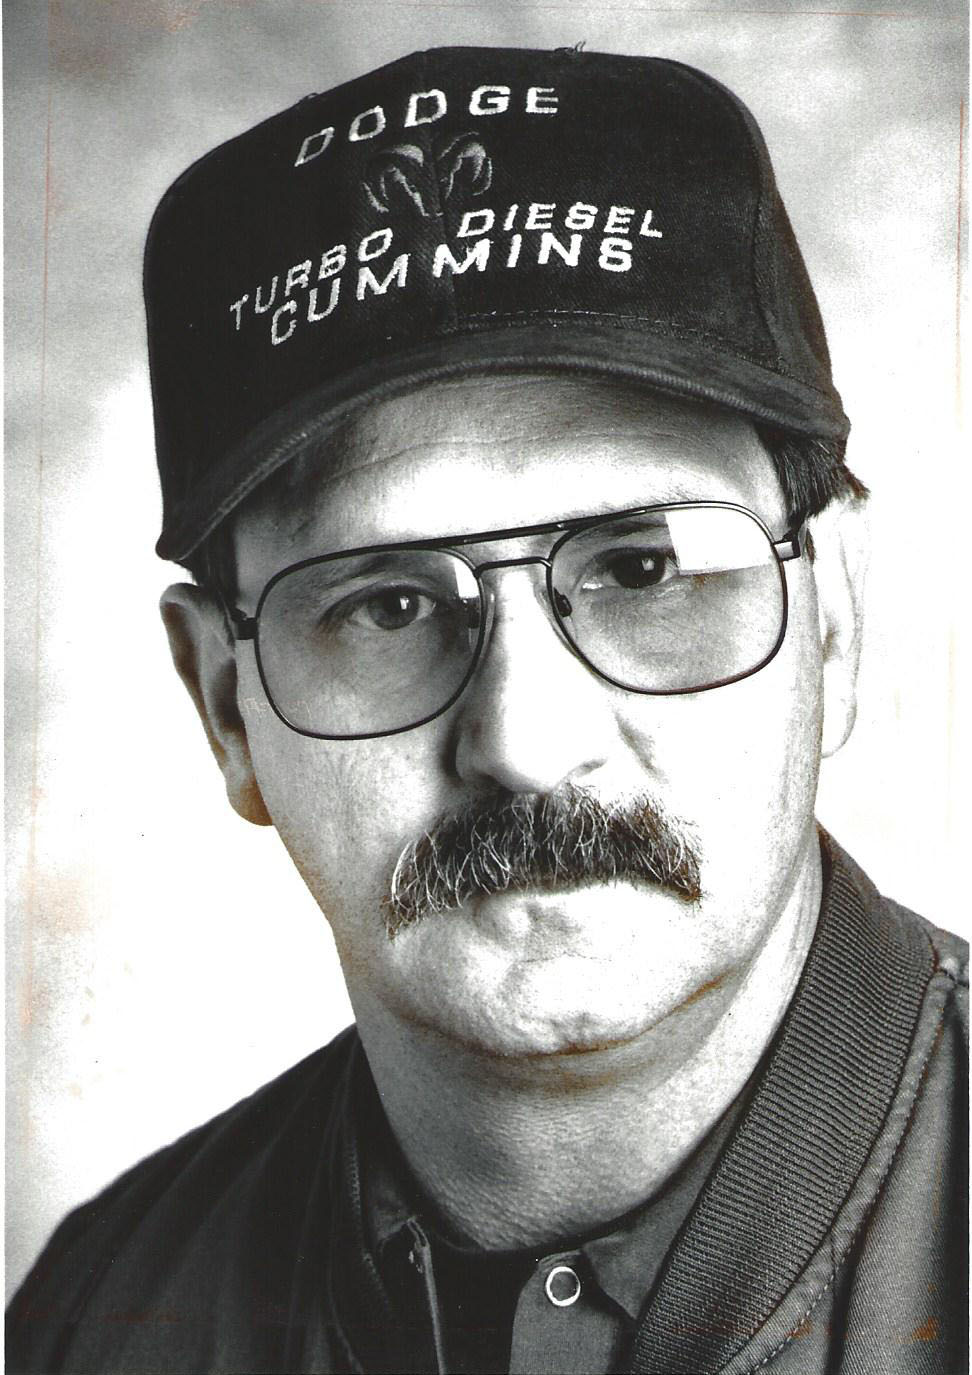 Bob 'Diesel Bob'Marinos   With over 30 years experience in the diesel industry, specializing in Dodge vehicles, Diesel Bob is our ace in the hole.